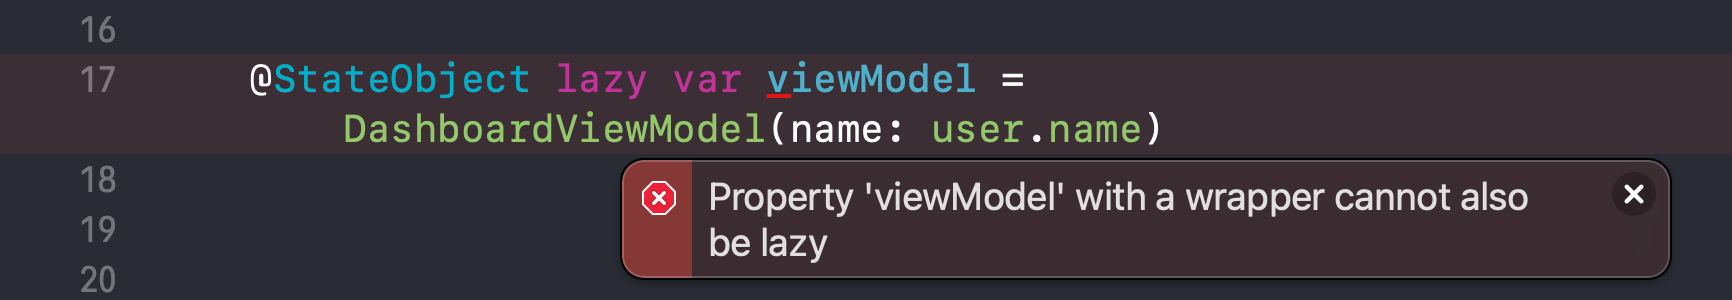 Property 'viewModel' with a wrapper cannot also be lazy